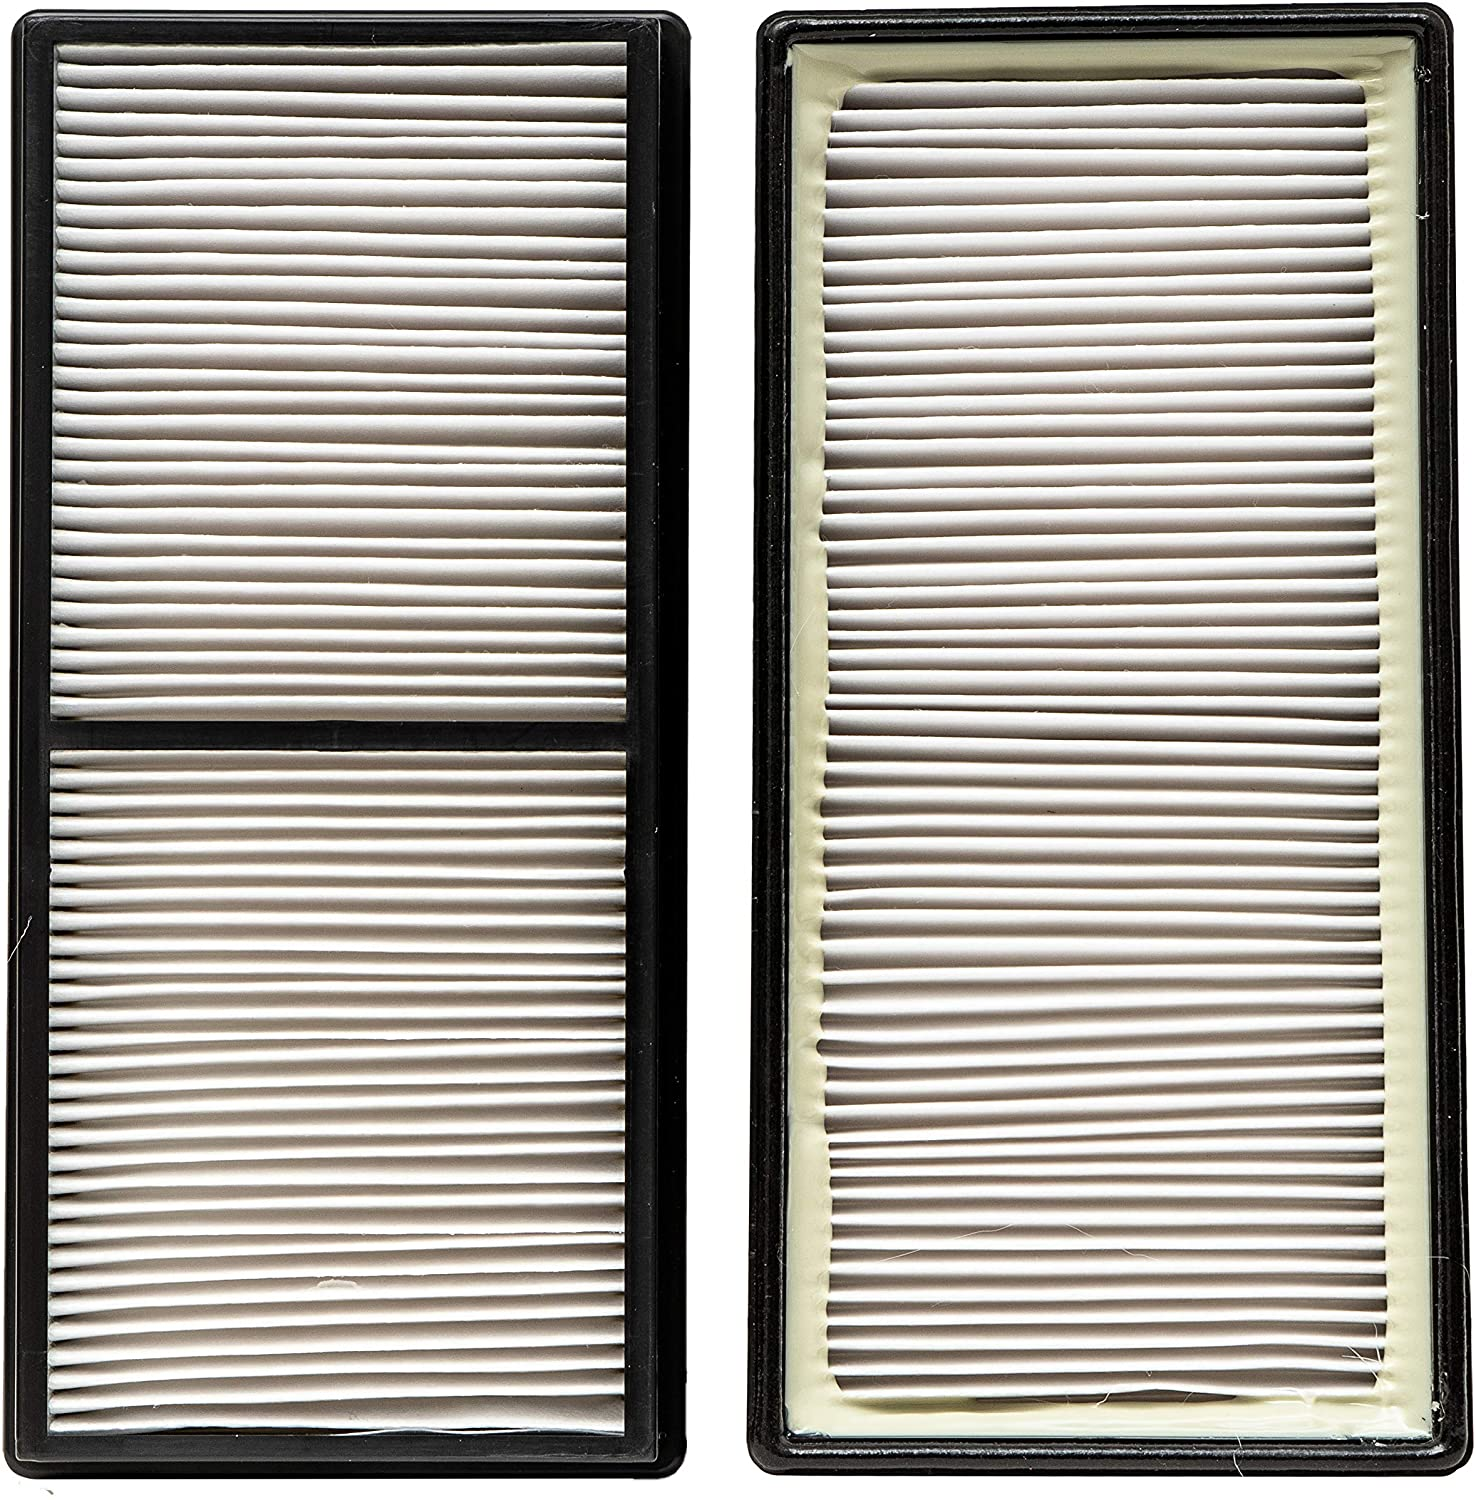 LifeSupplyUSA 10PK Replacement HEPA Filter Compatible with Hunter 30904 Air Purifiers 30836, 30841, 30847, 30848, 30876